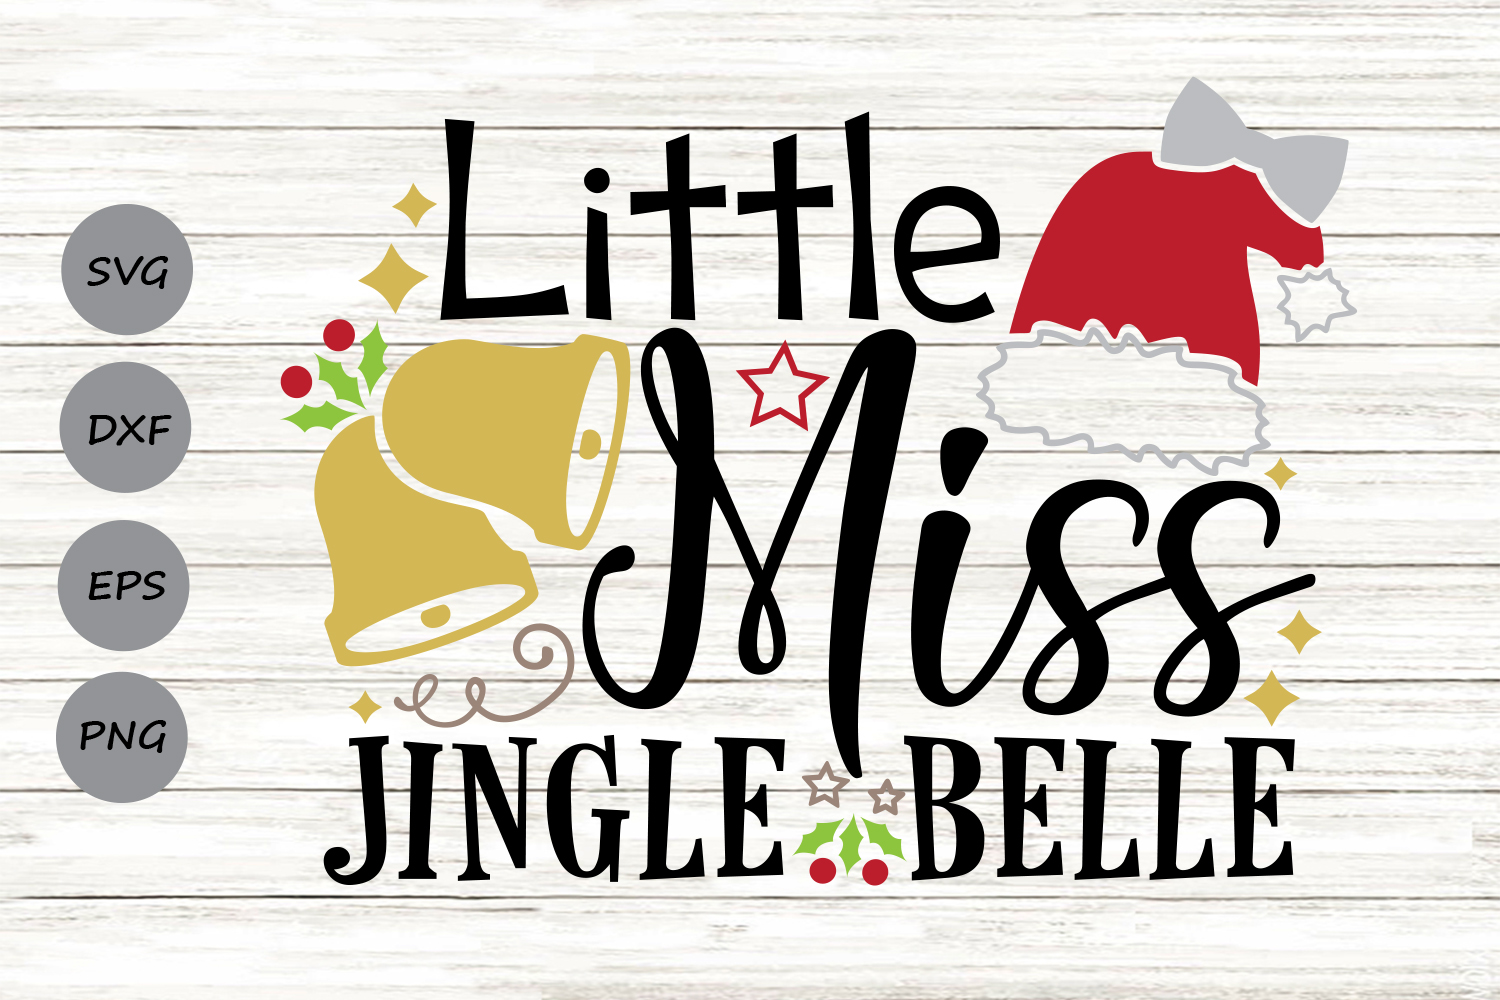 Download Free Little Miss Jingle Belle Graphic By Cosmosfineart Creative Fabrica for Cricut Explore, Silhouette and other cutting machines.